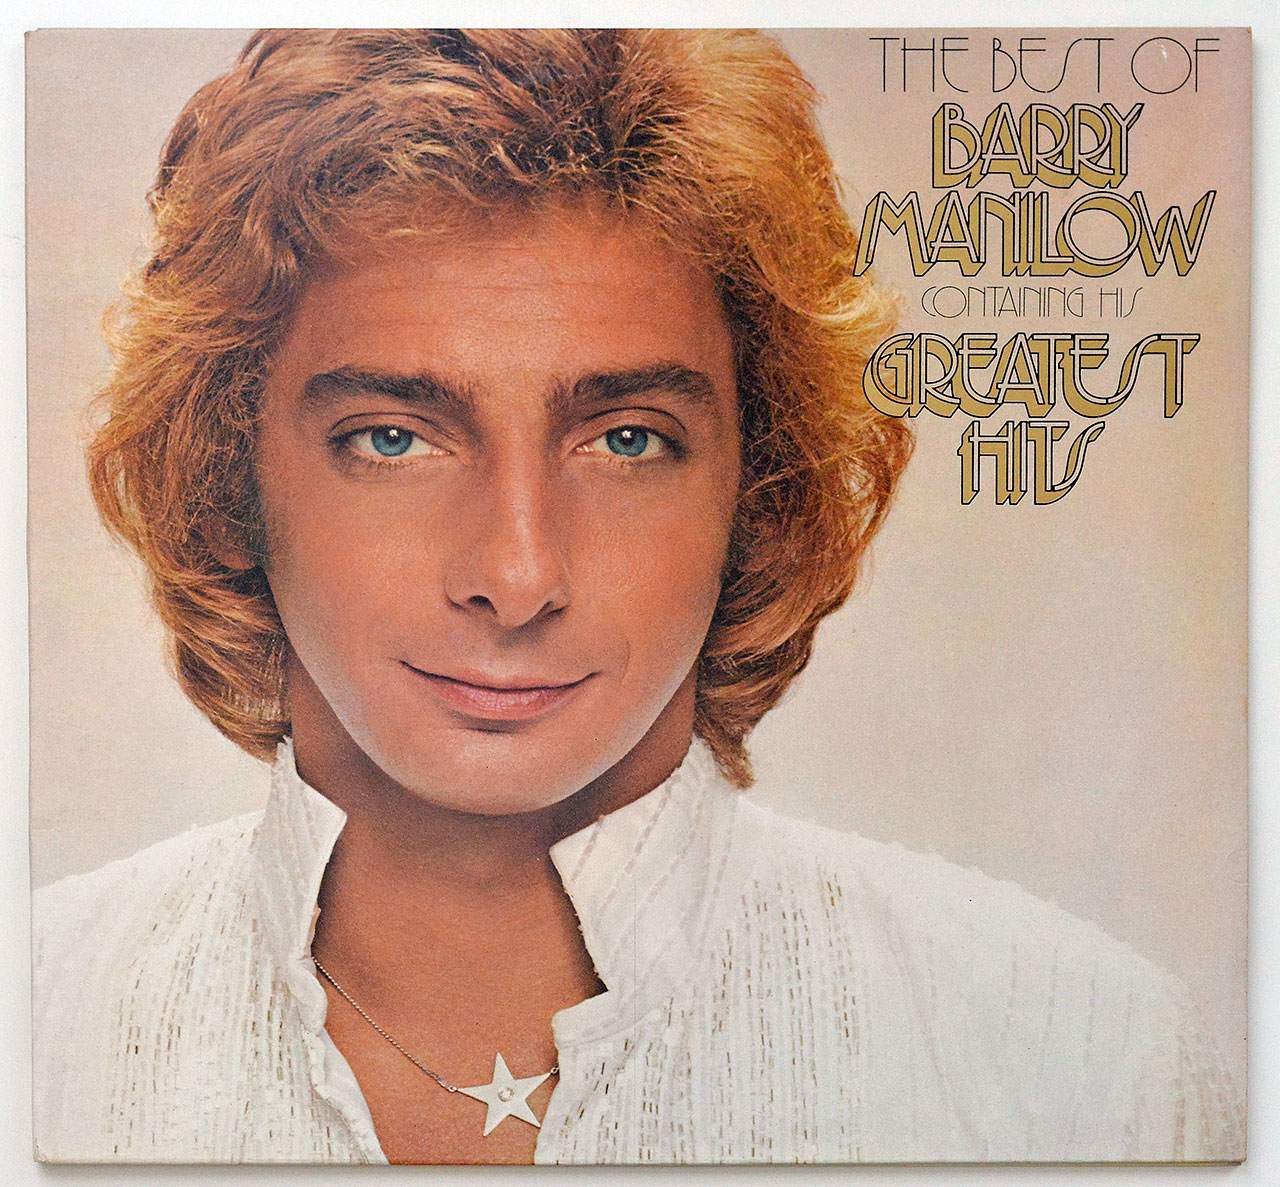 A0690 BARRY MANILOW The Best of Barry Manilow (OIS)